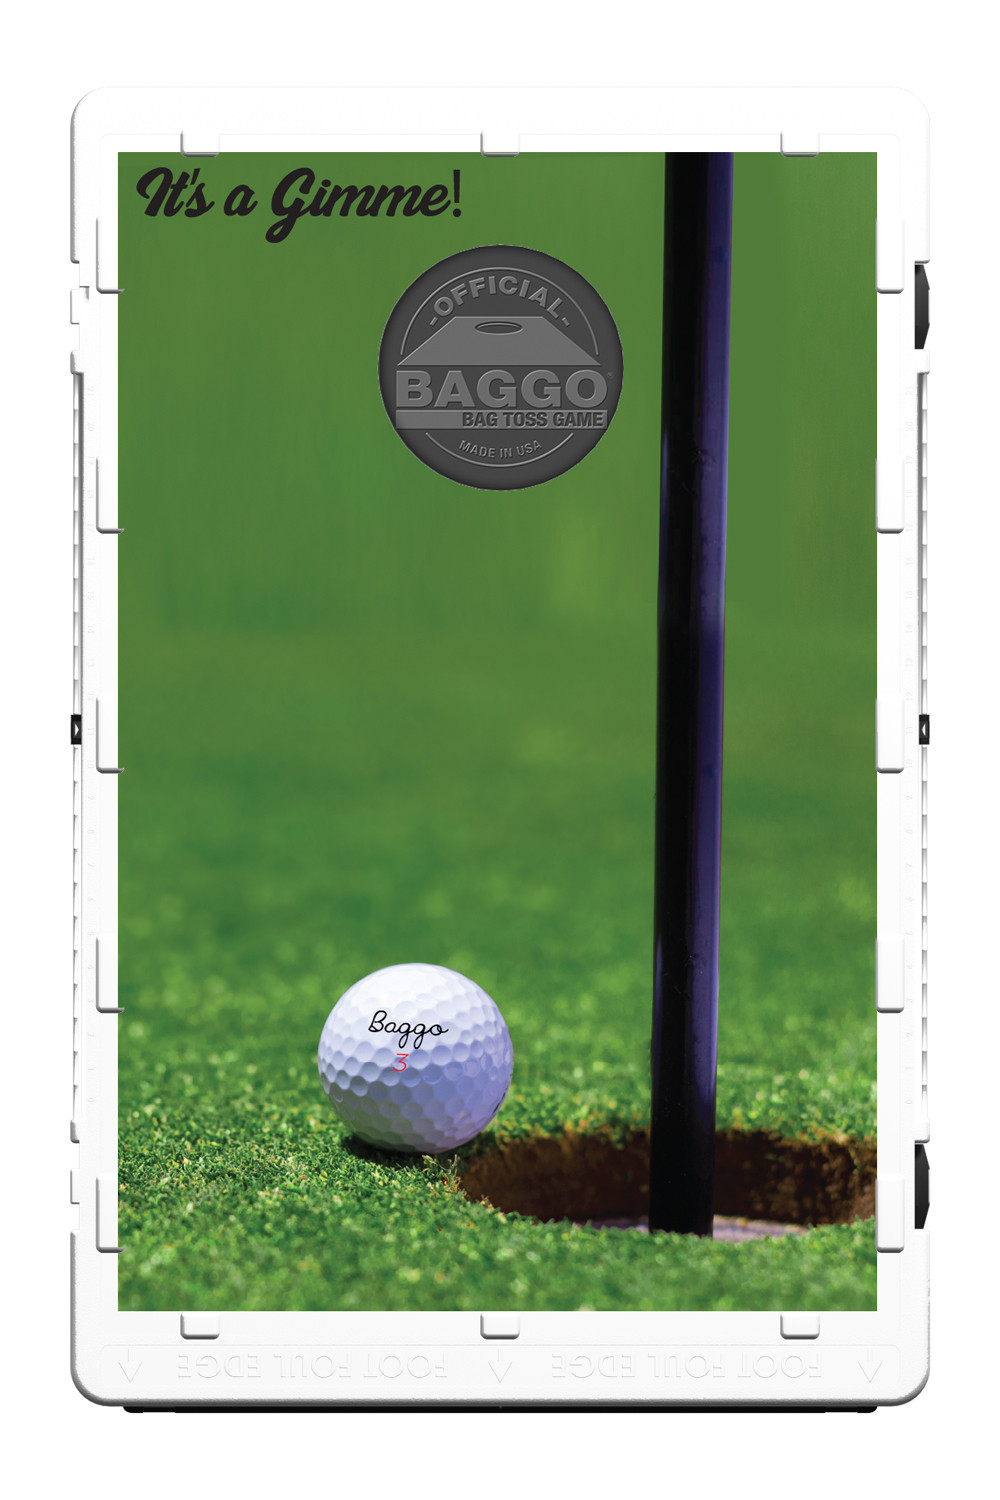 Golf Tap It In Screens (only) by Baggo